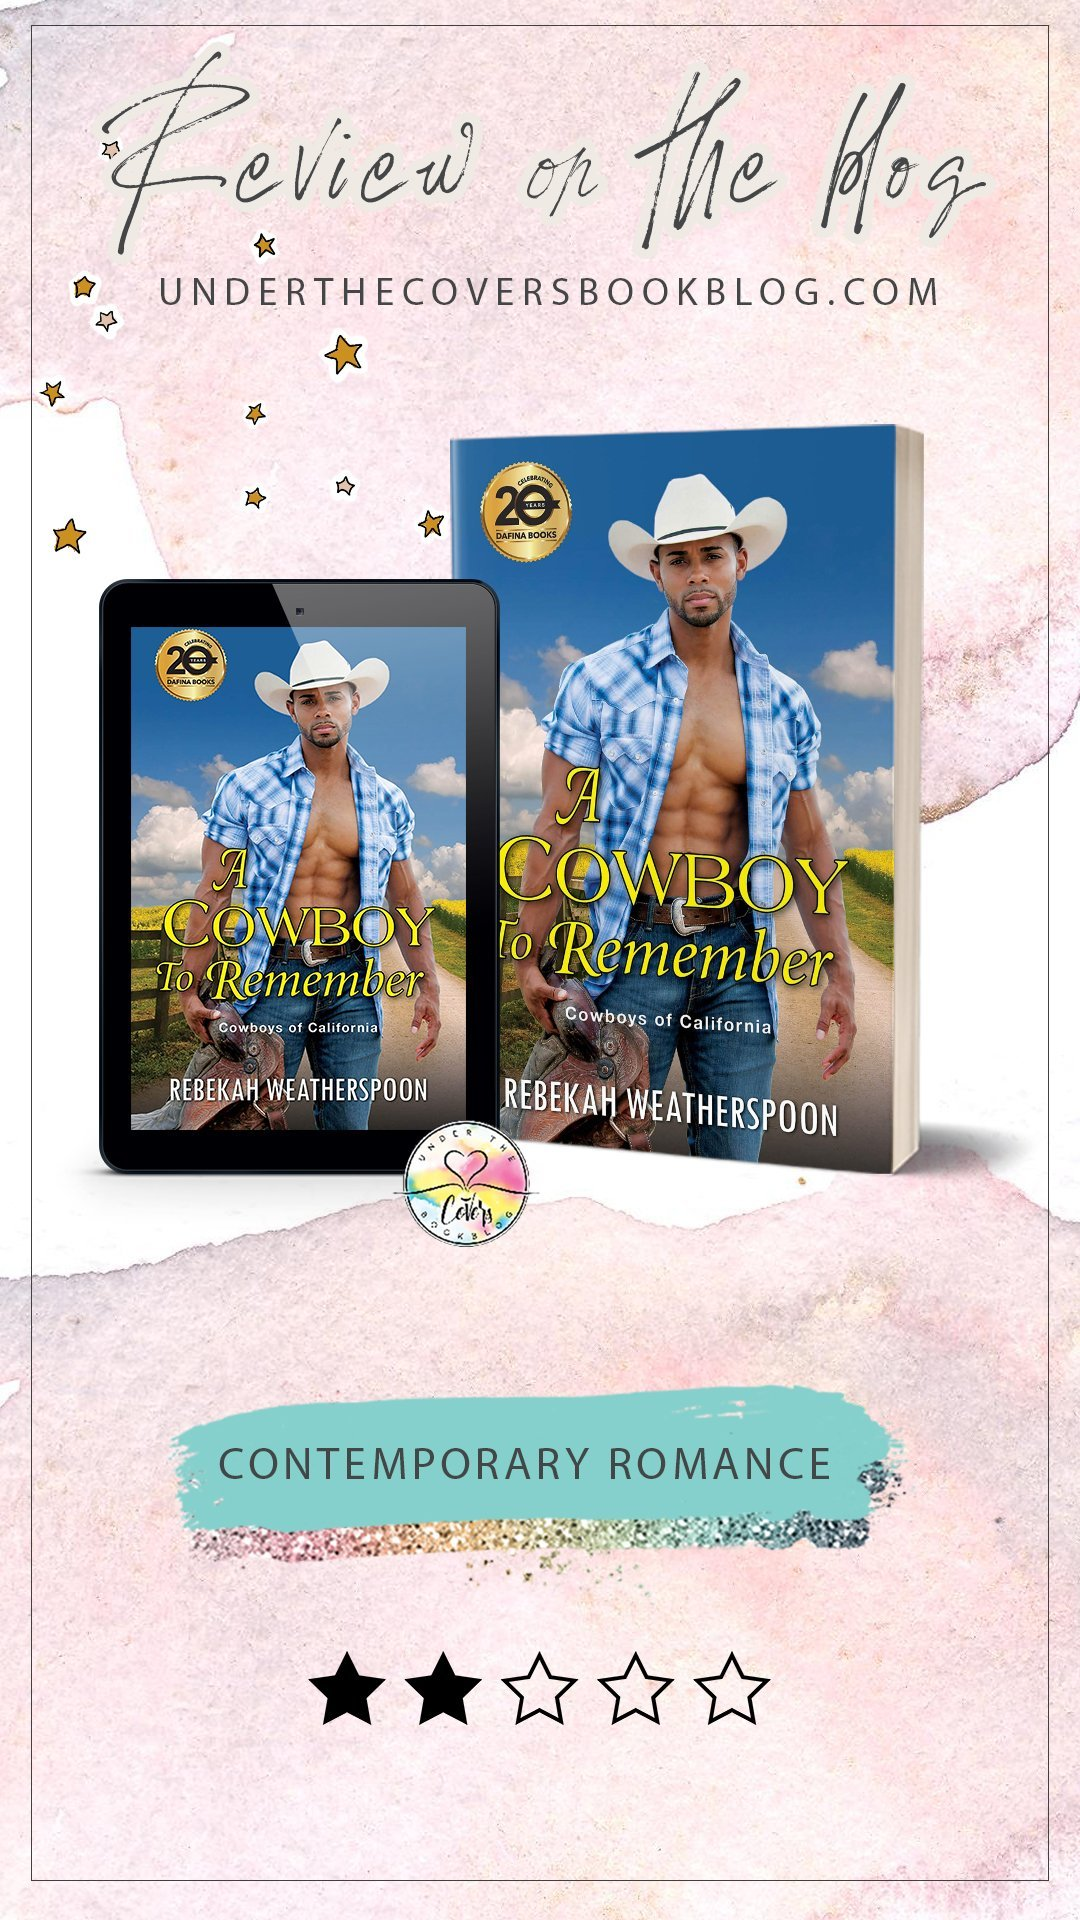 ARC Review: A Cowboy to Remember by Rebekah Weatherspoon